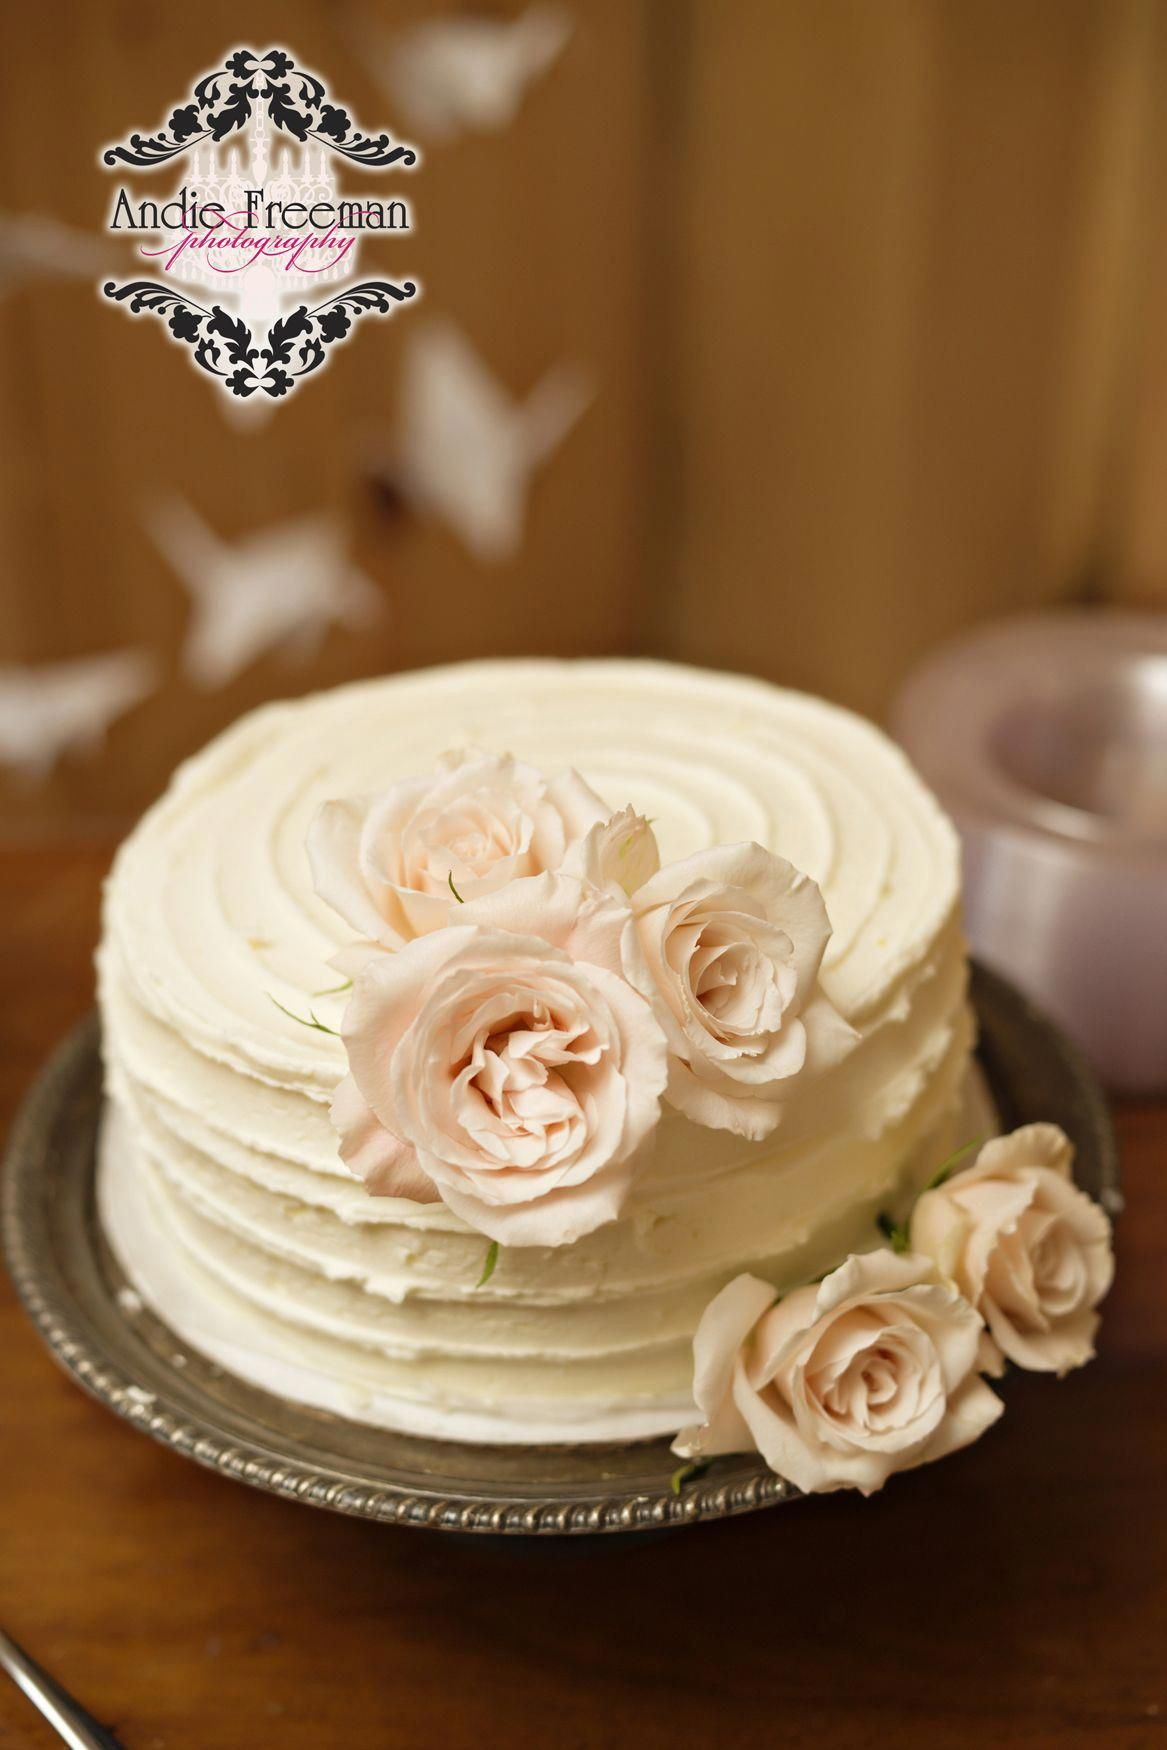 Country Barn Wedding Vintage Cake With Roses And Ruffled Icing Photography Www Theathenswedding Simple Wedding Cake Cheap Wedding Cakes Fondant Wedding Cakes